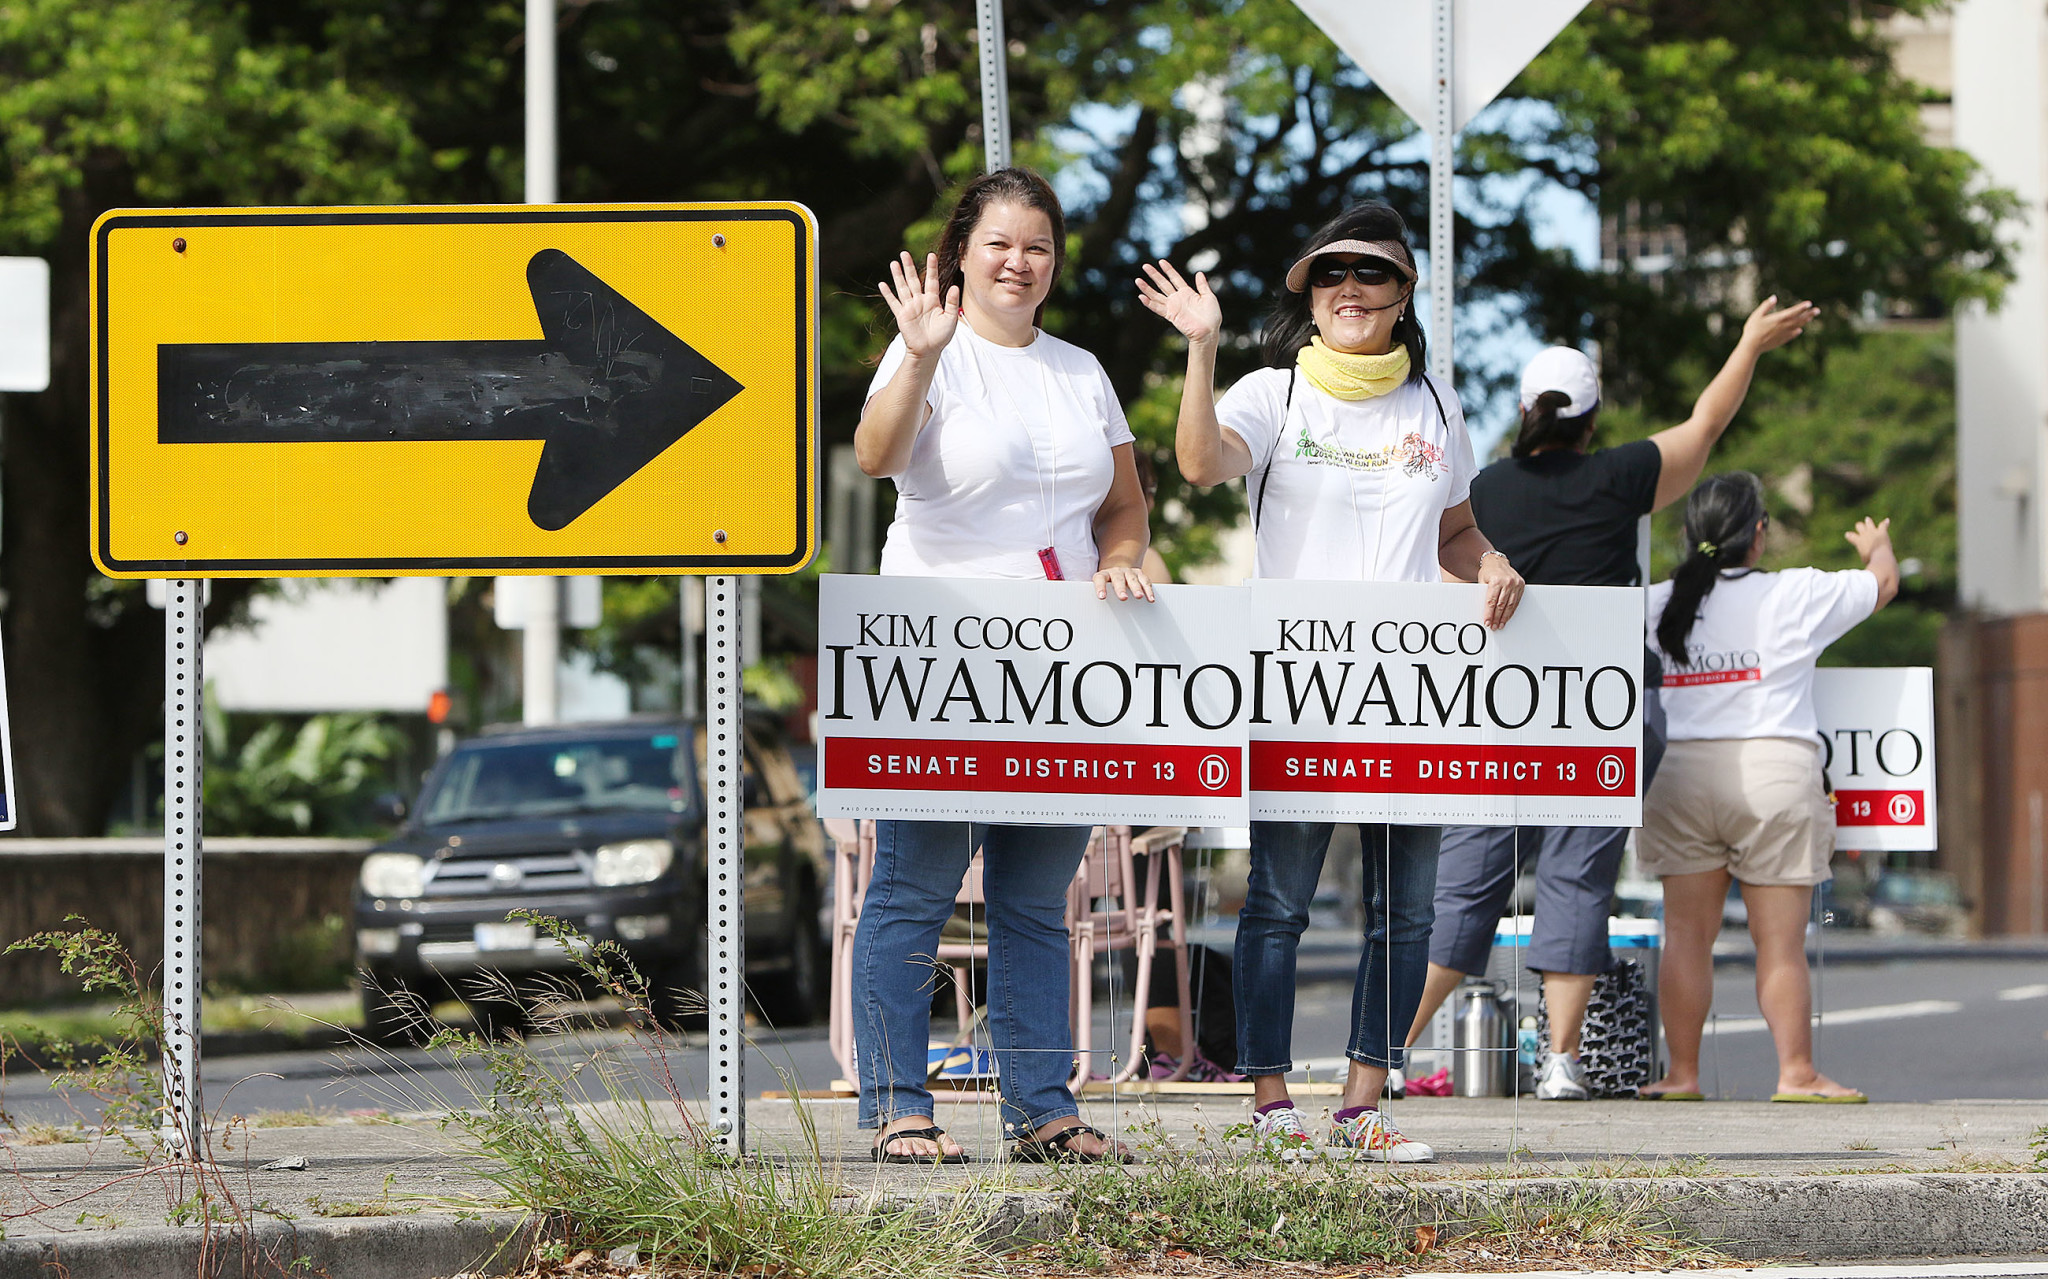 <p>All day, sign-wavers urged passersby to vote. With a record low voter turnout, most obviously chose not to. Dawn Nekoba, left, and Lynda Camarao displayed their support for Kim Coco Iwamoto's state Senate campaign near Central Middle school. (Cory Lum/Civil Beat)</p>